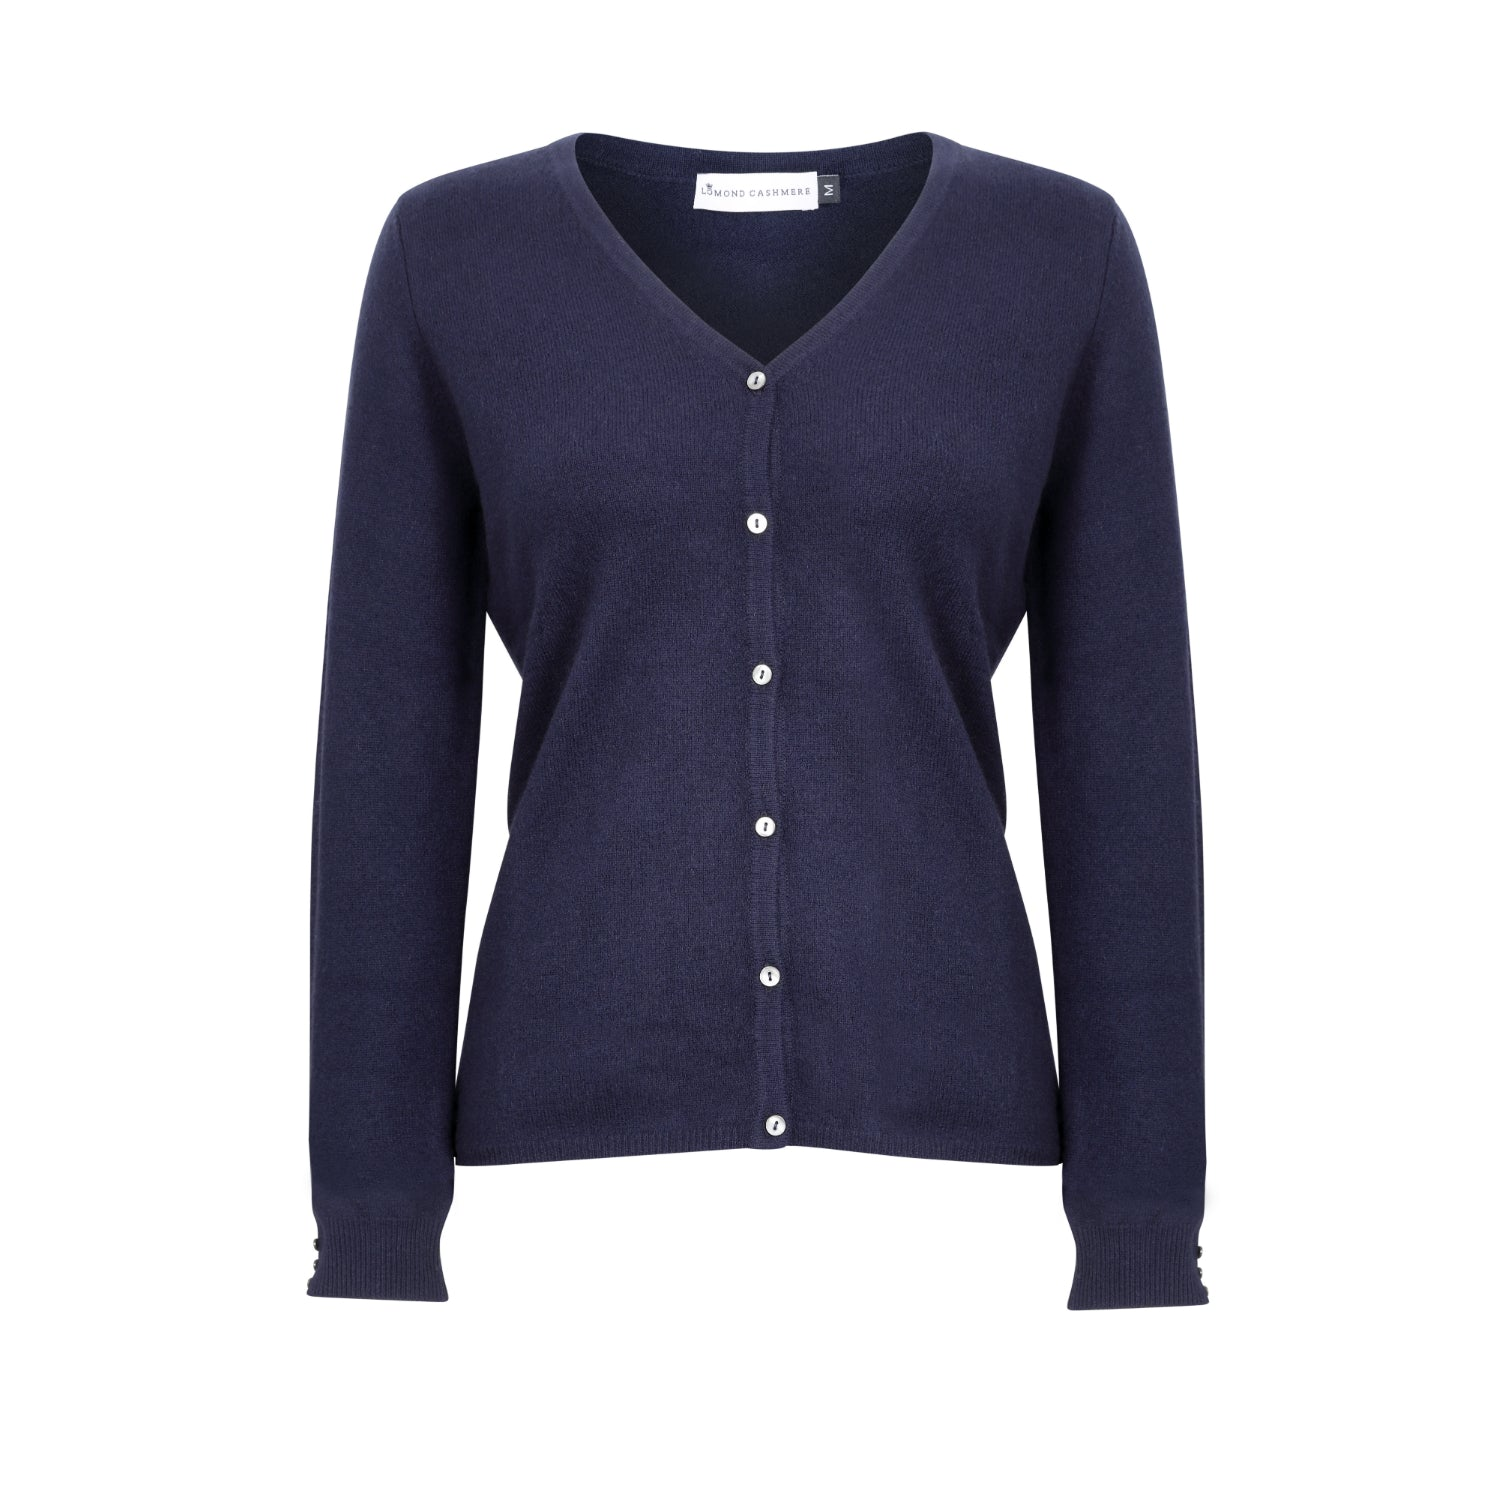 Ladies Cashmere Cardigans The Cashmere Choice